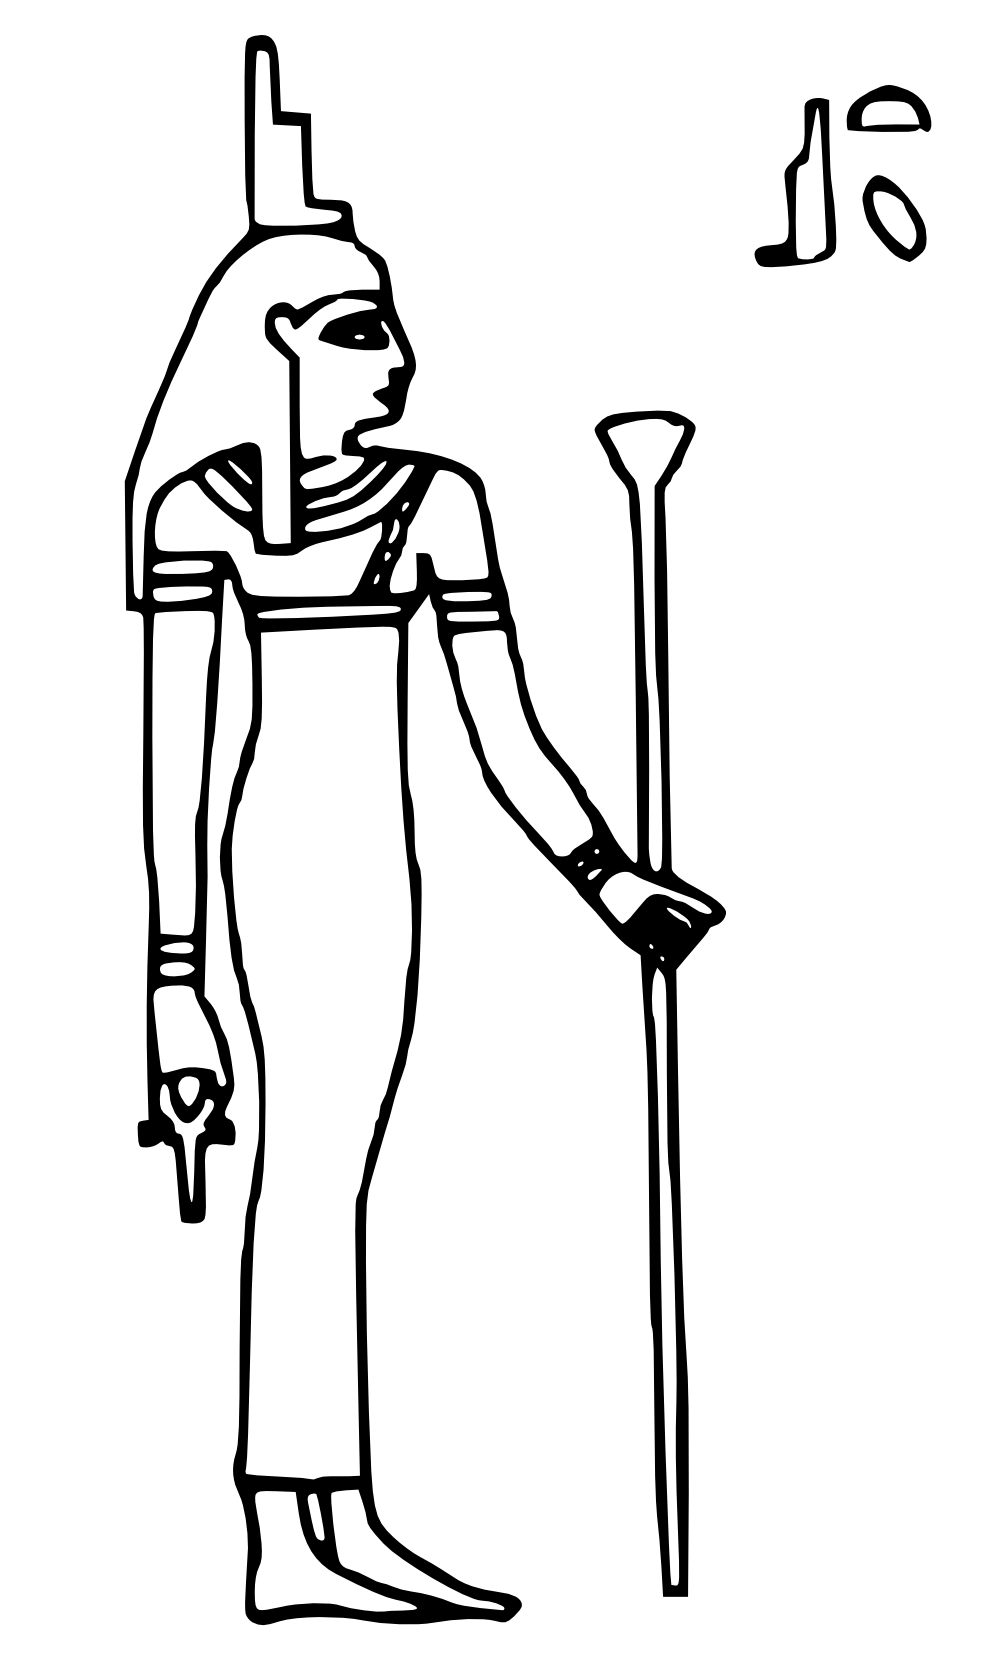 Sekhmet Egyptian goddess & gods Coloring Page | Egyptian goddess ... | 1673x999